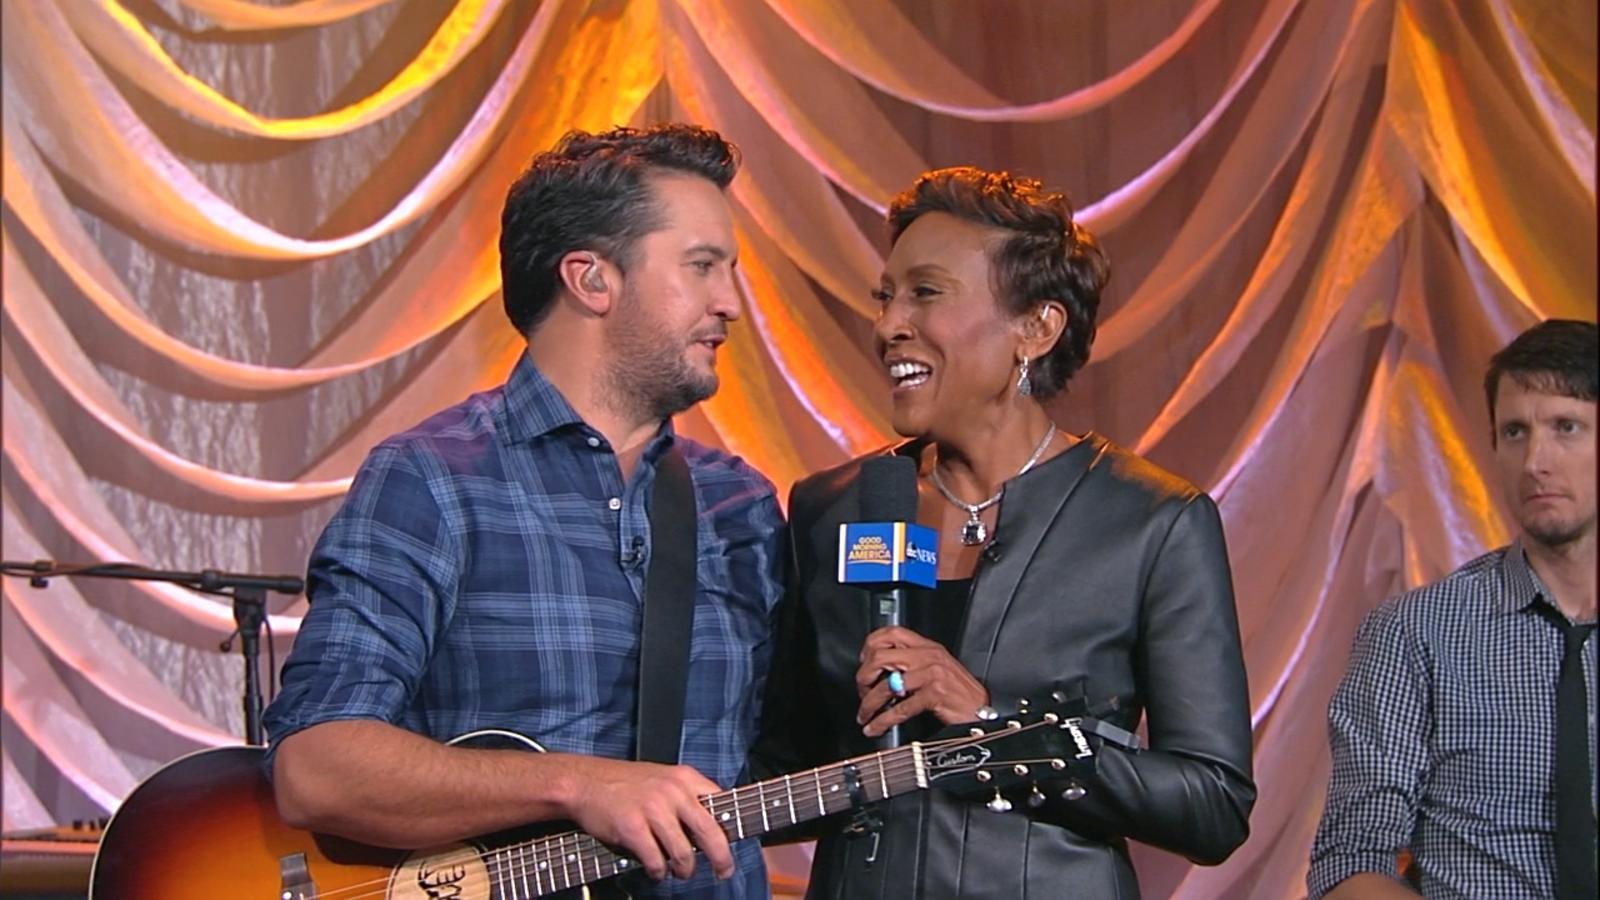 Luke Bryan Country Star on His Expanded Family  PEOPLEcom